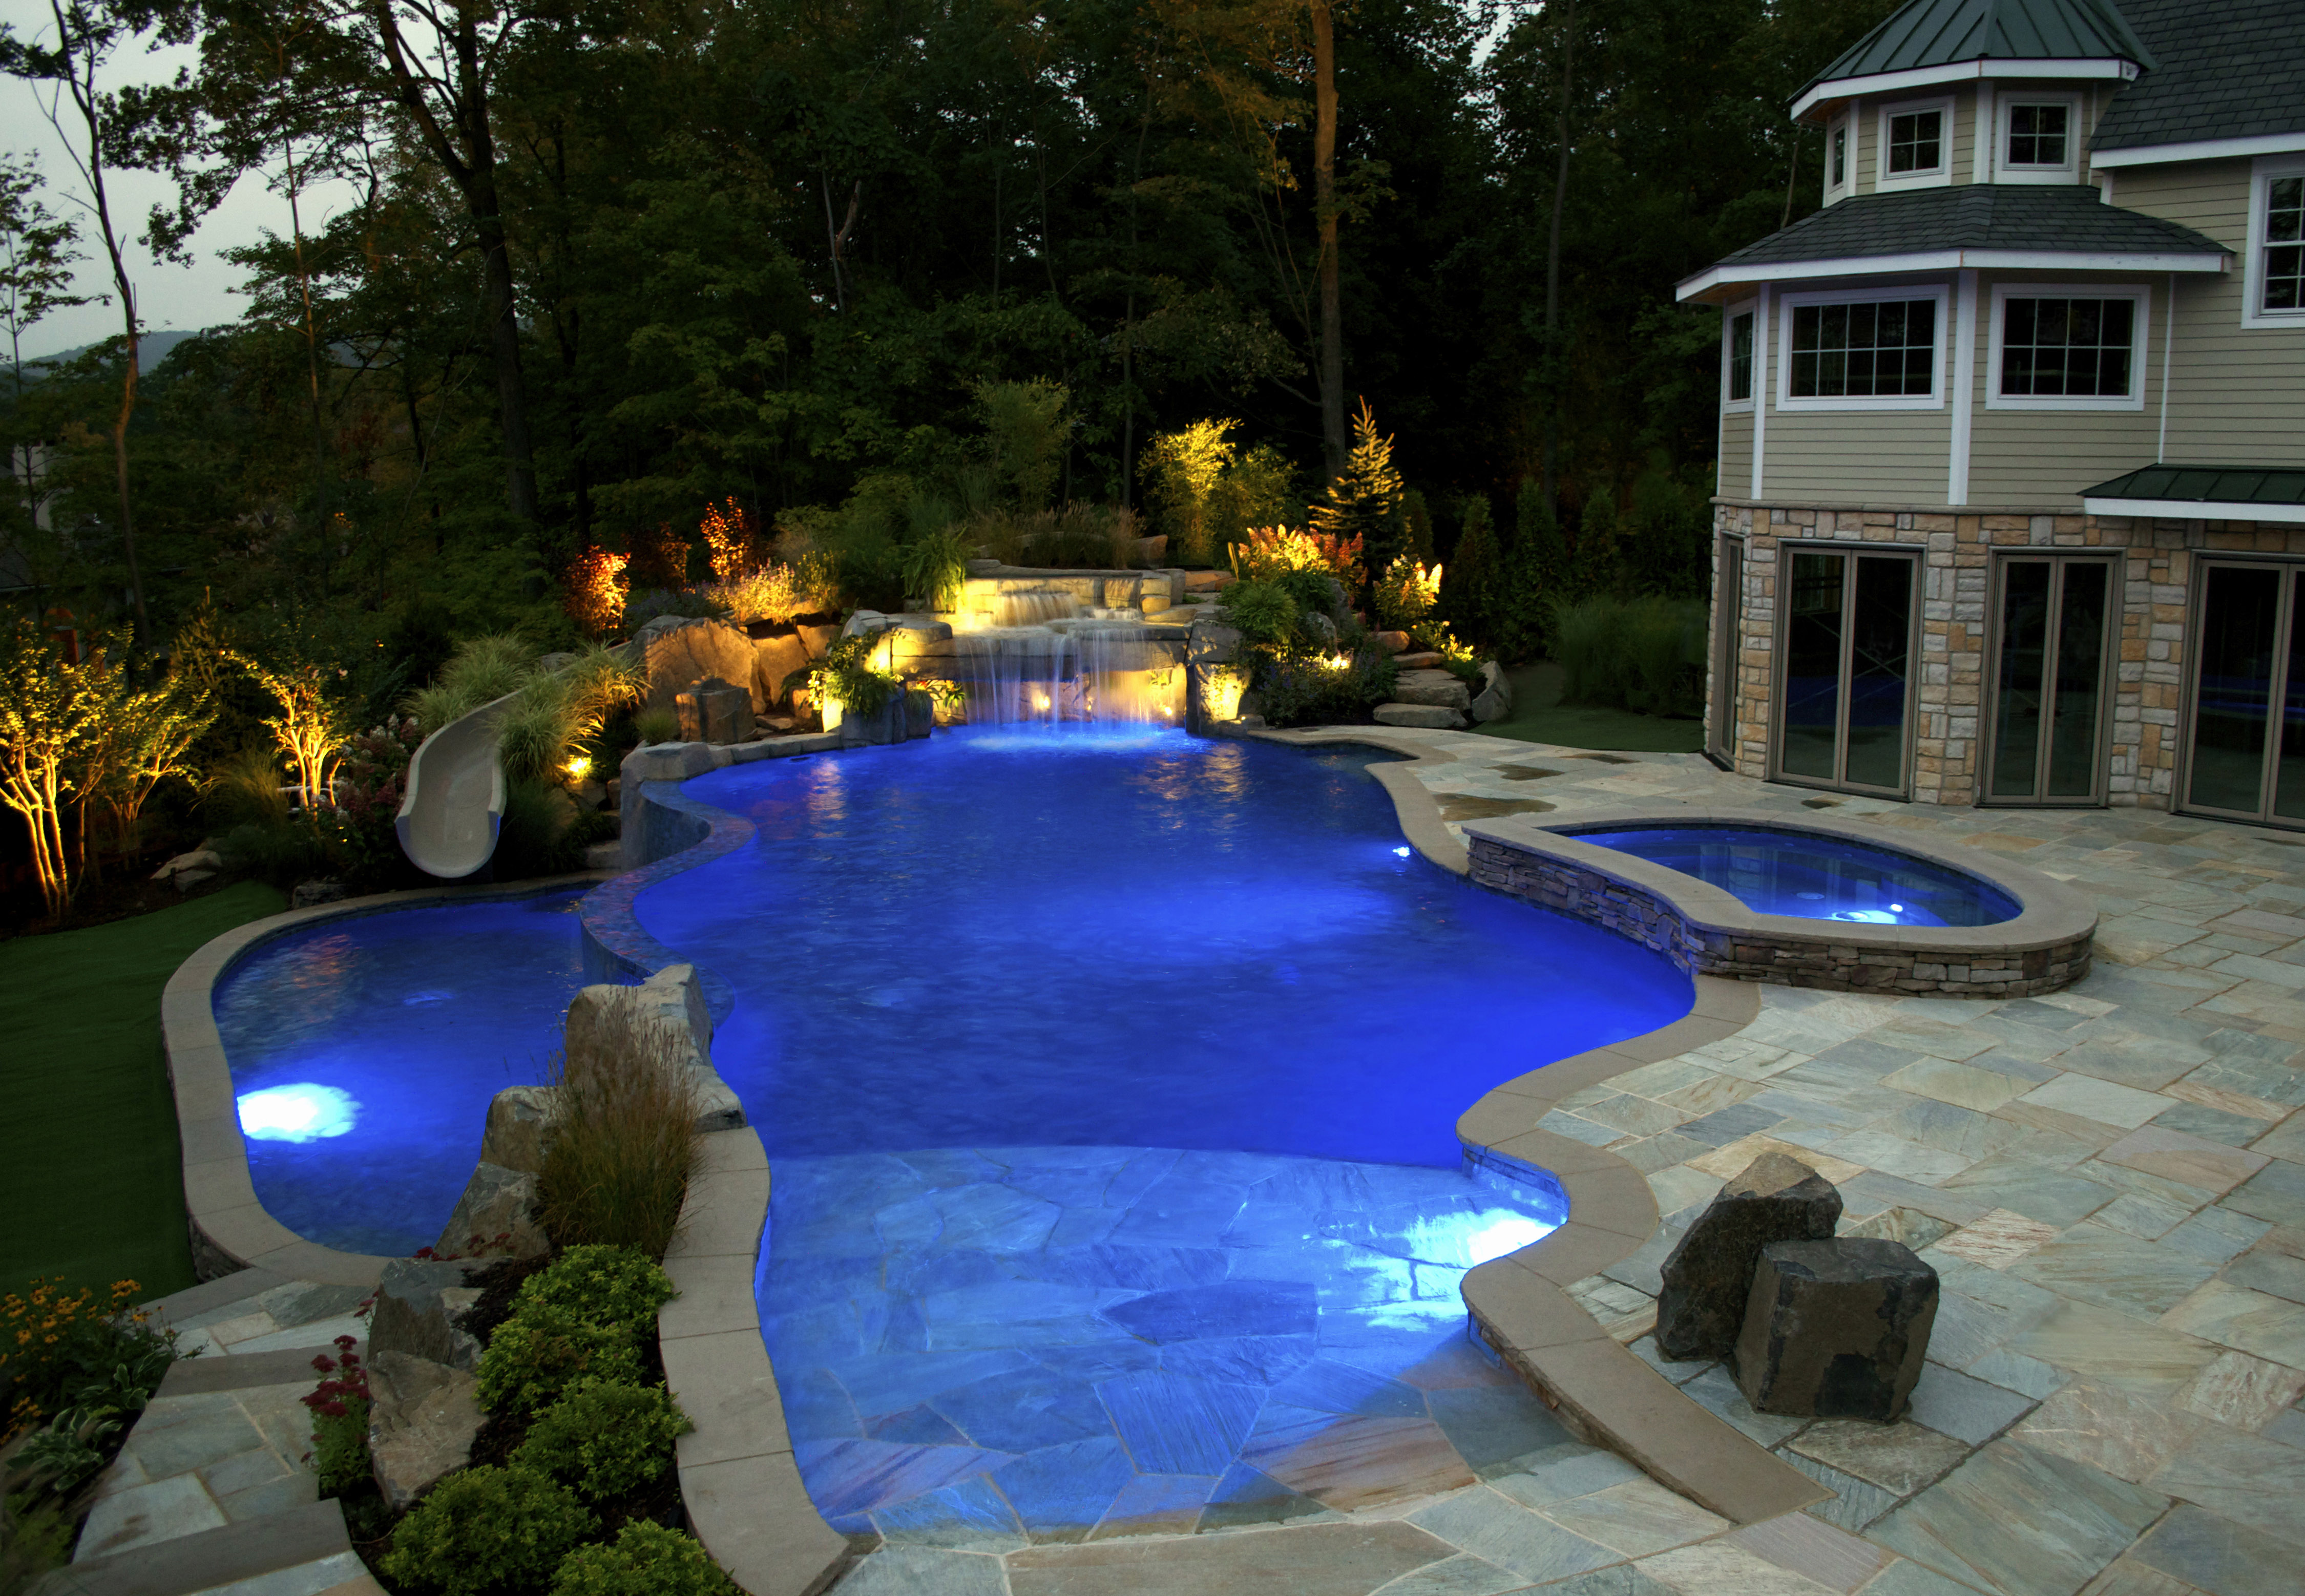 Nj pool company debuts new pool features for luxury for Pool designs under 30000